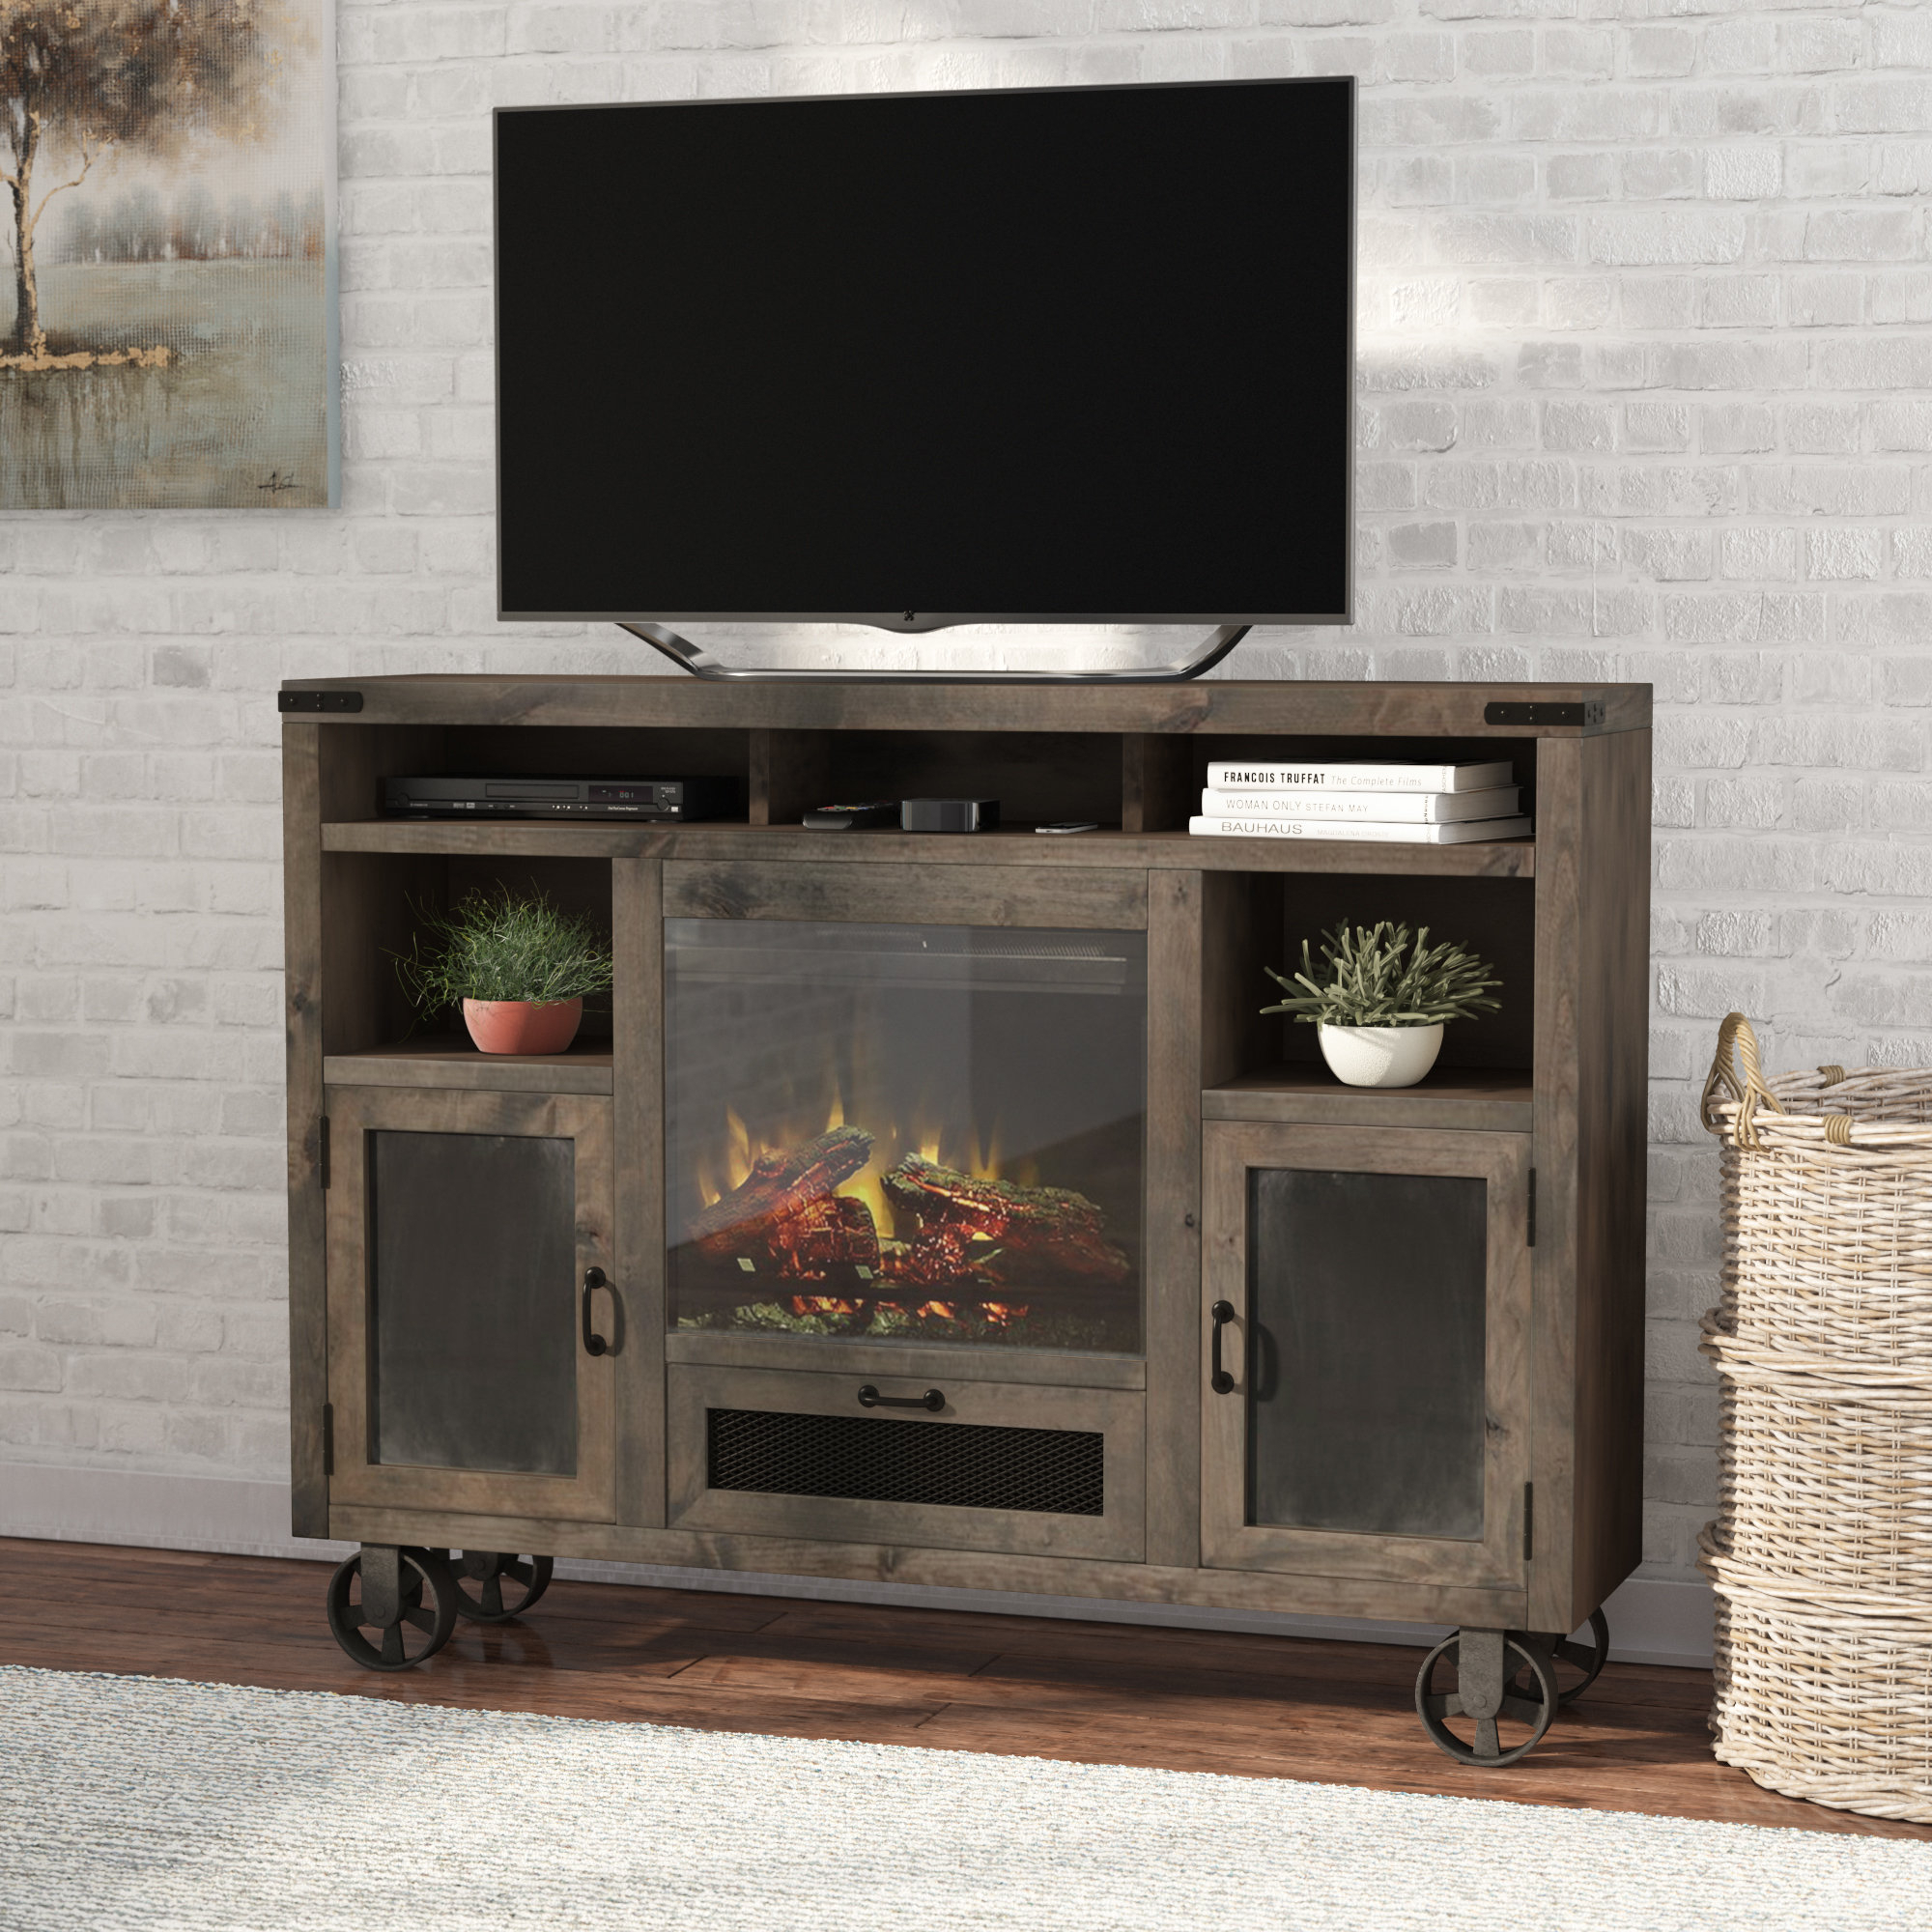 36 Inch Tall Tv Stand | Wayfair For Edwin Black 64 Inch Tv Stands (View 6 of 30)